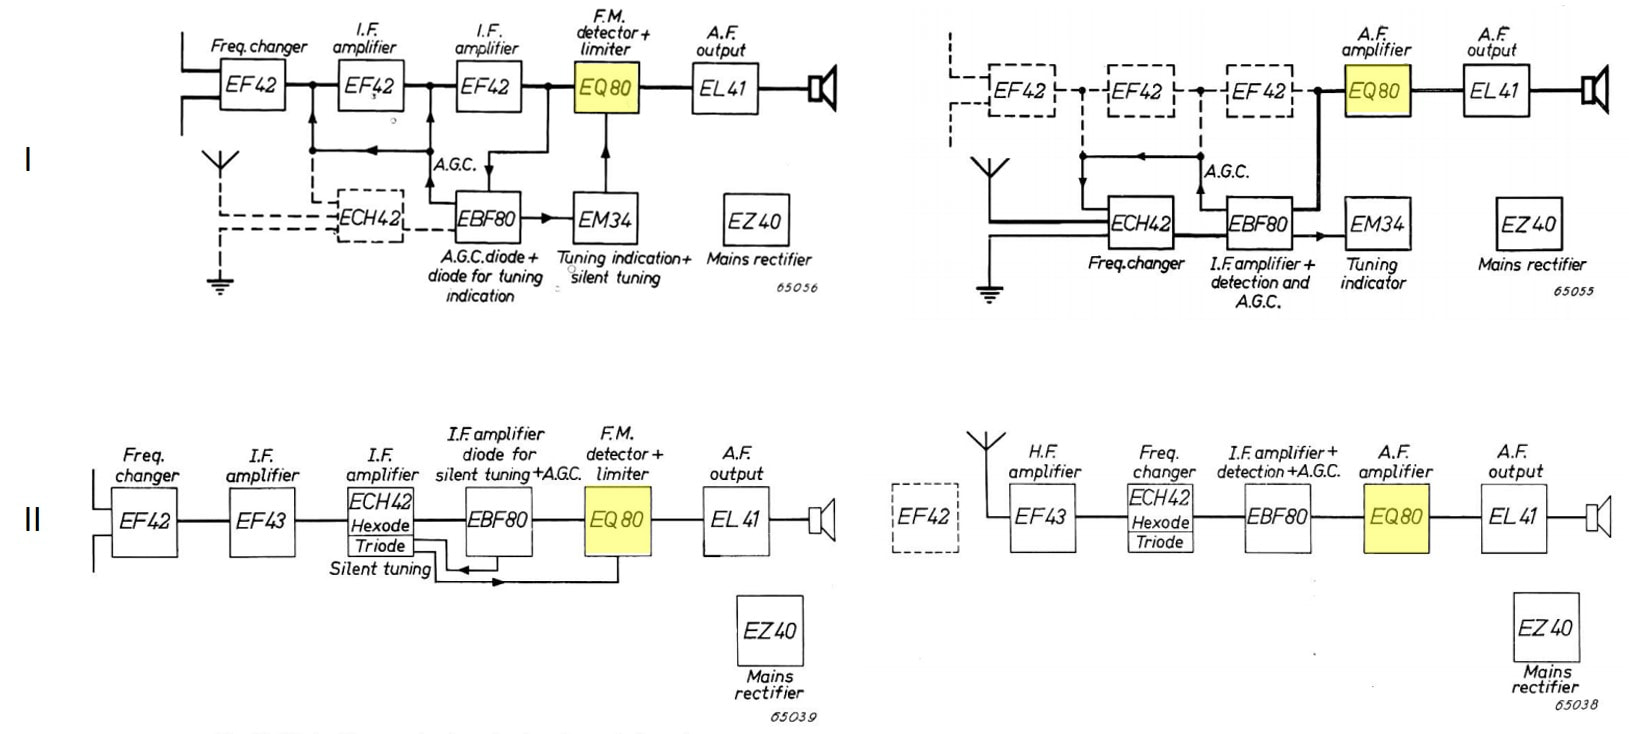 Eq40 And Eq80 Figure 4 Block Diagram Of Detector Rf Amplifier Picture